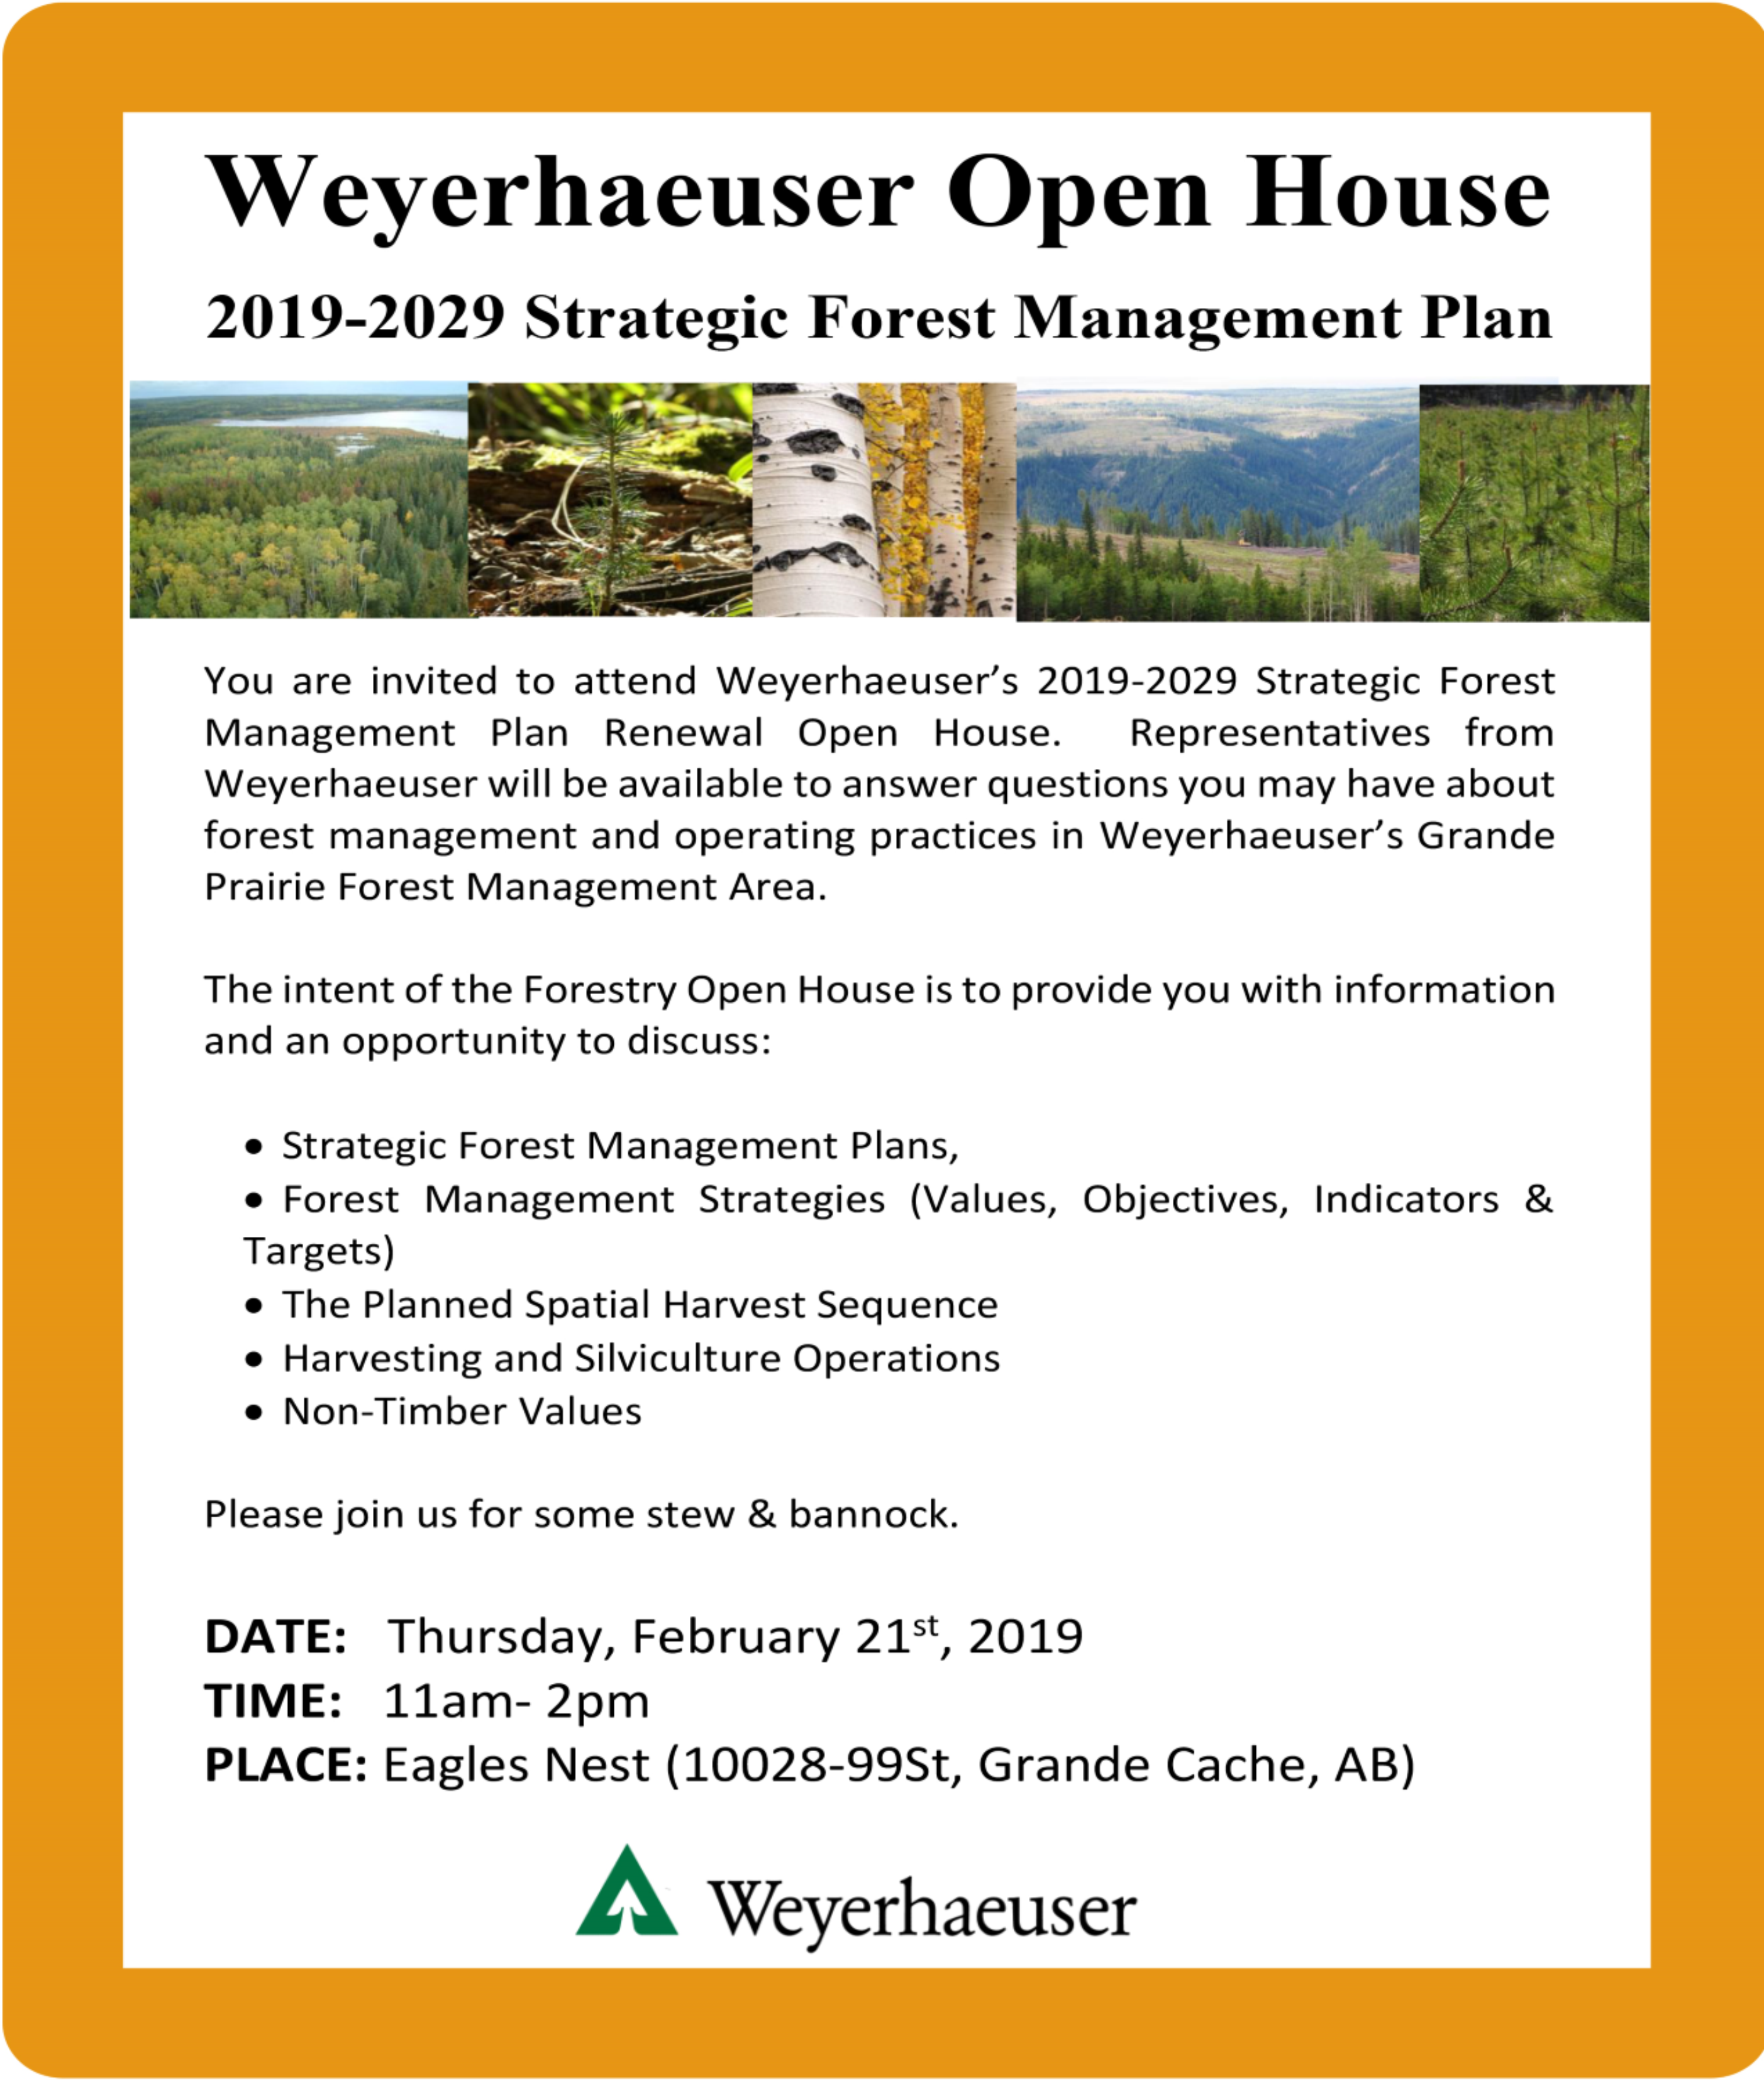 Weyerhaeuser Open House